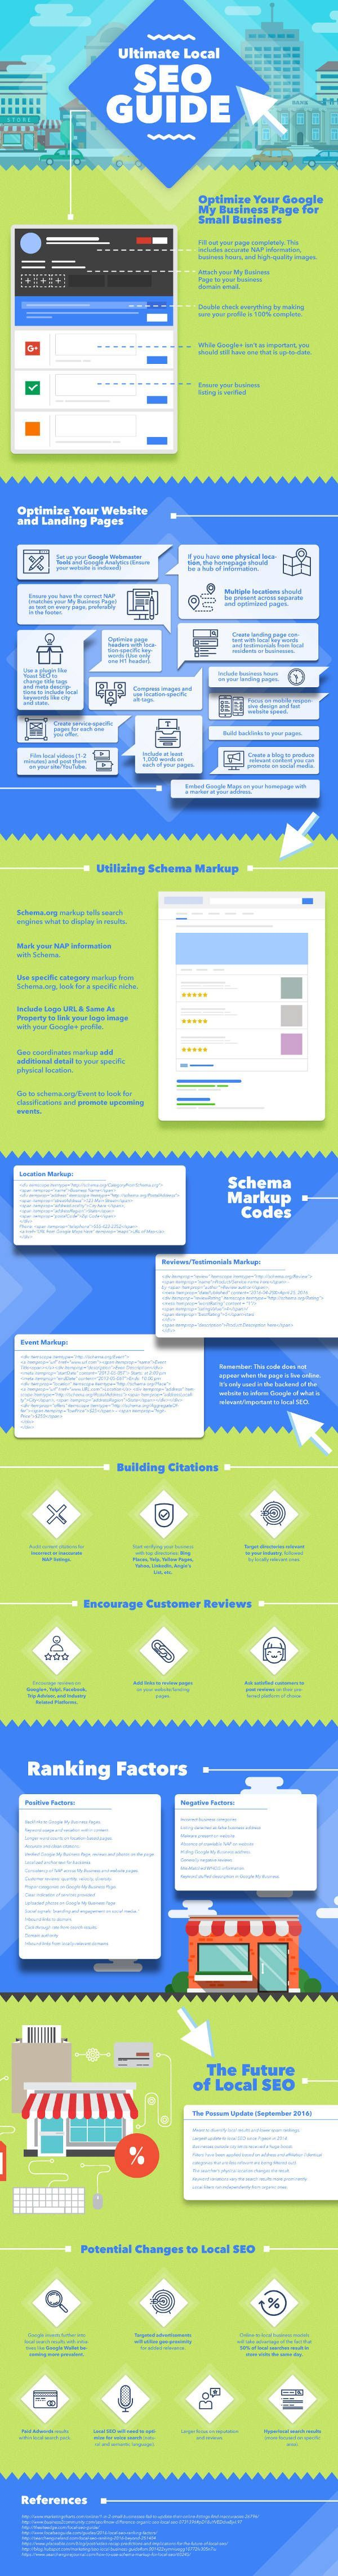 For local SEO tips, see this infographic guide on how to optimize your website for local search—from Google My Business to schema markup, landing pages, ranking factors, customer reviews, and more.